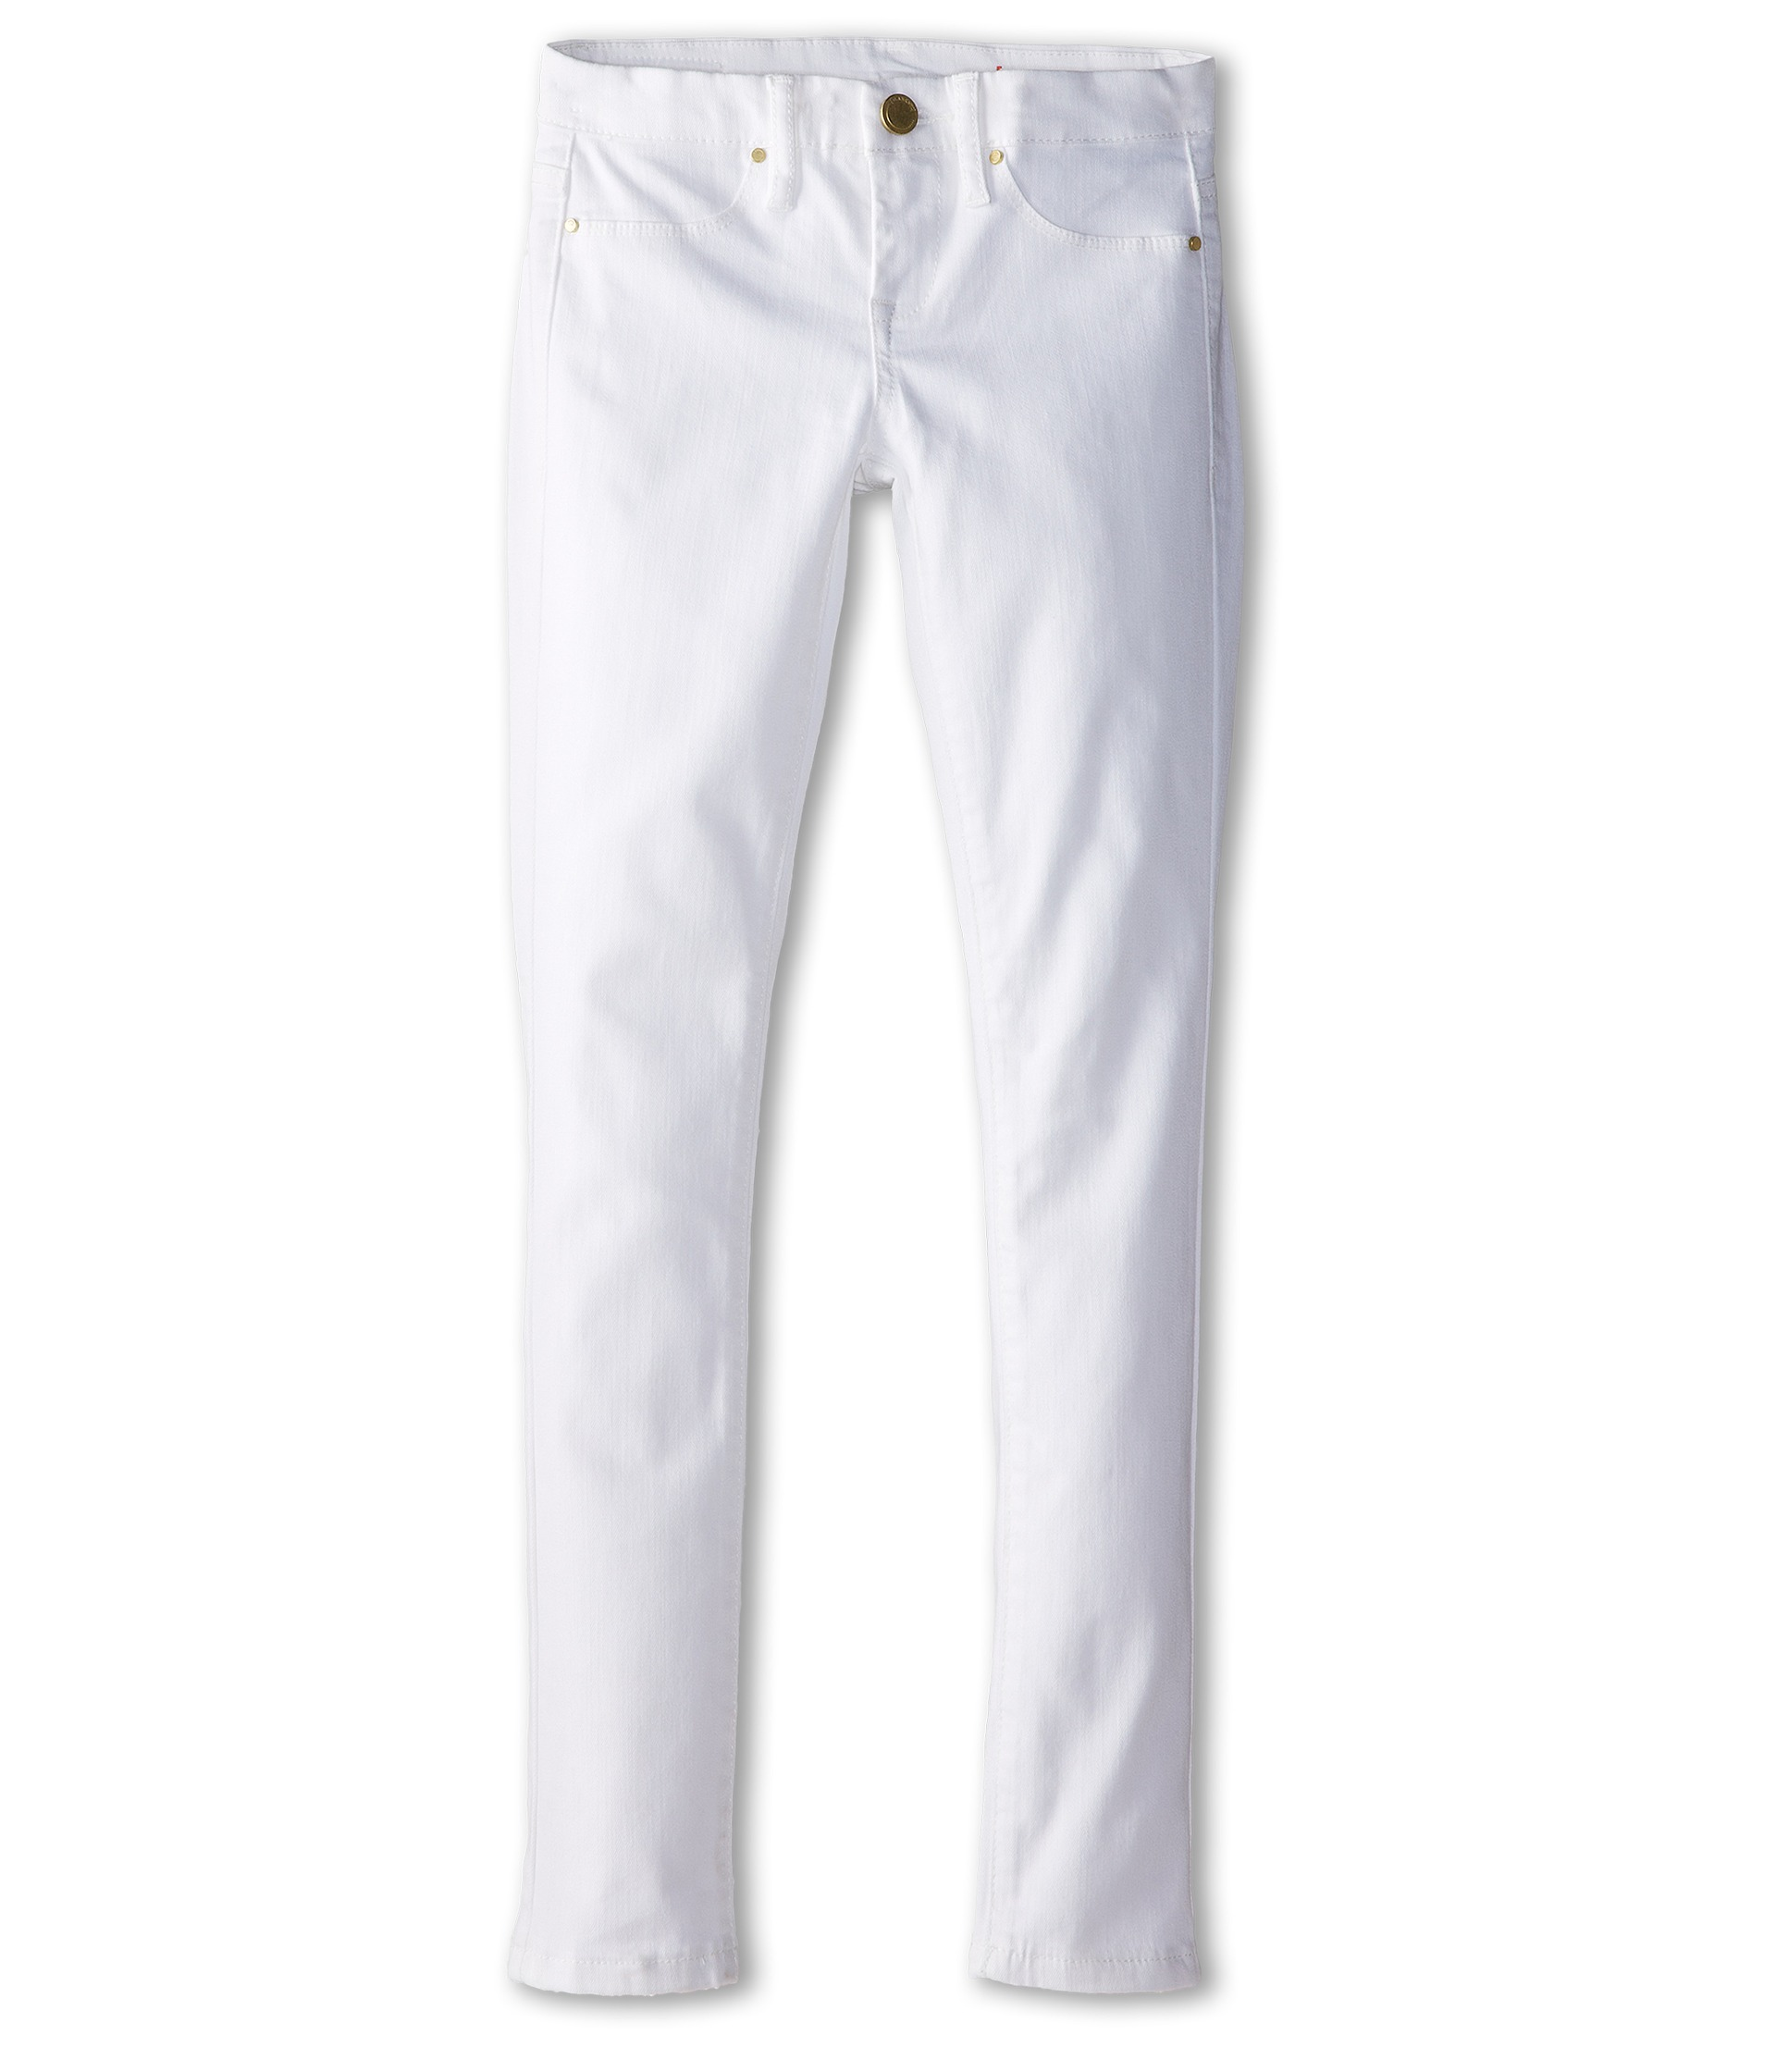 Blank NYC Kids Skinny Jeans in White Lines (Big Kids) - Zappos.com ...